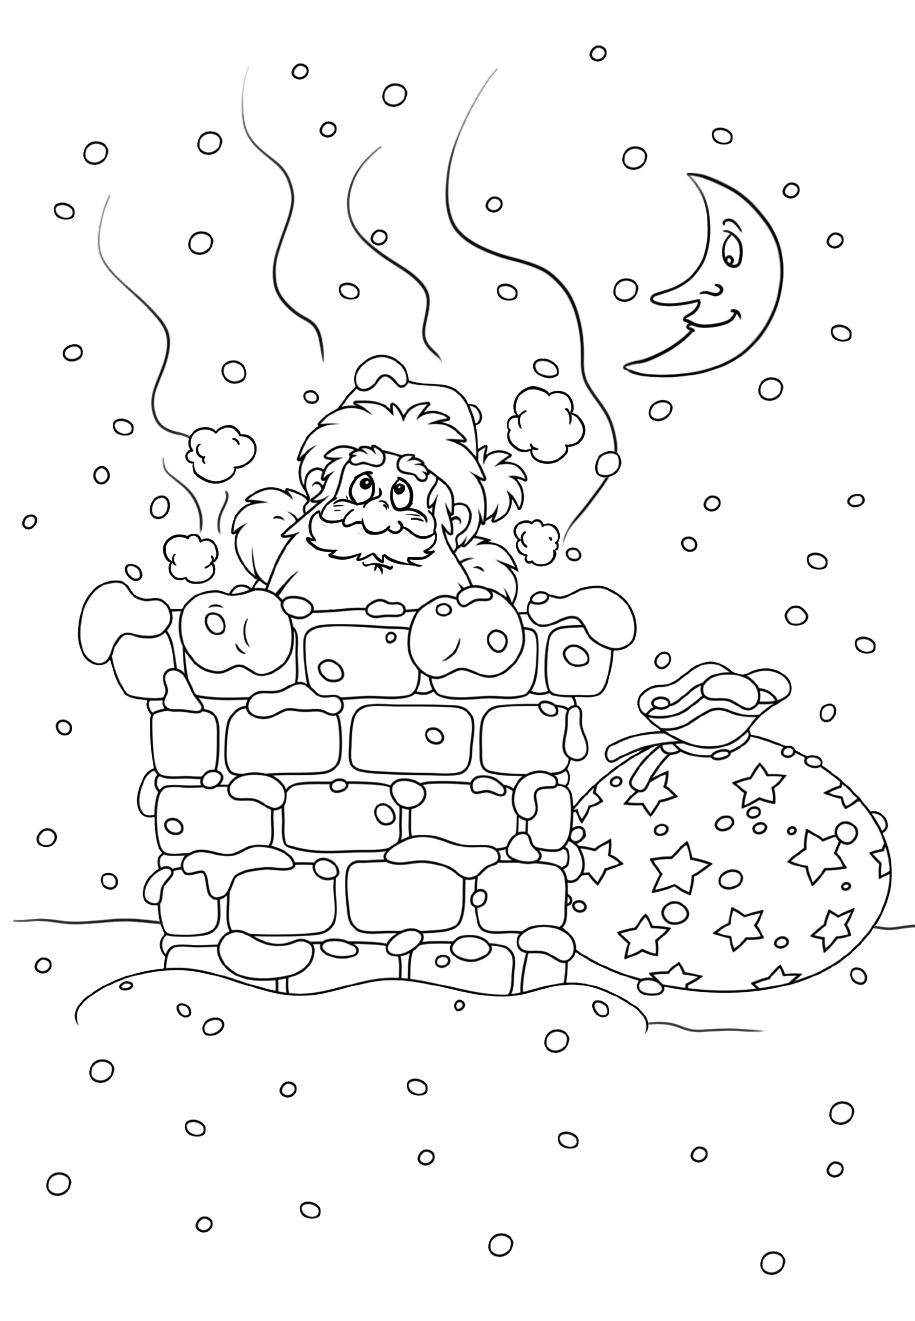 Santa in the chimney